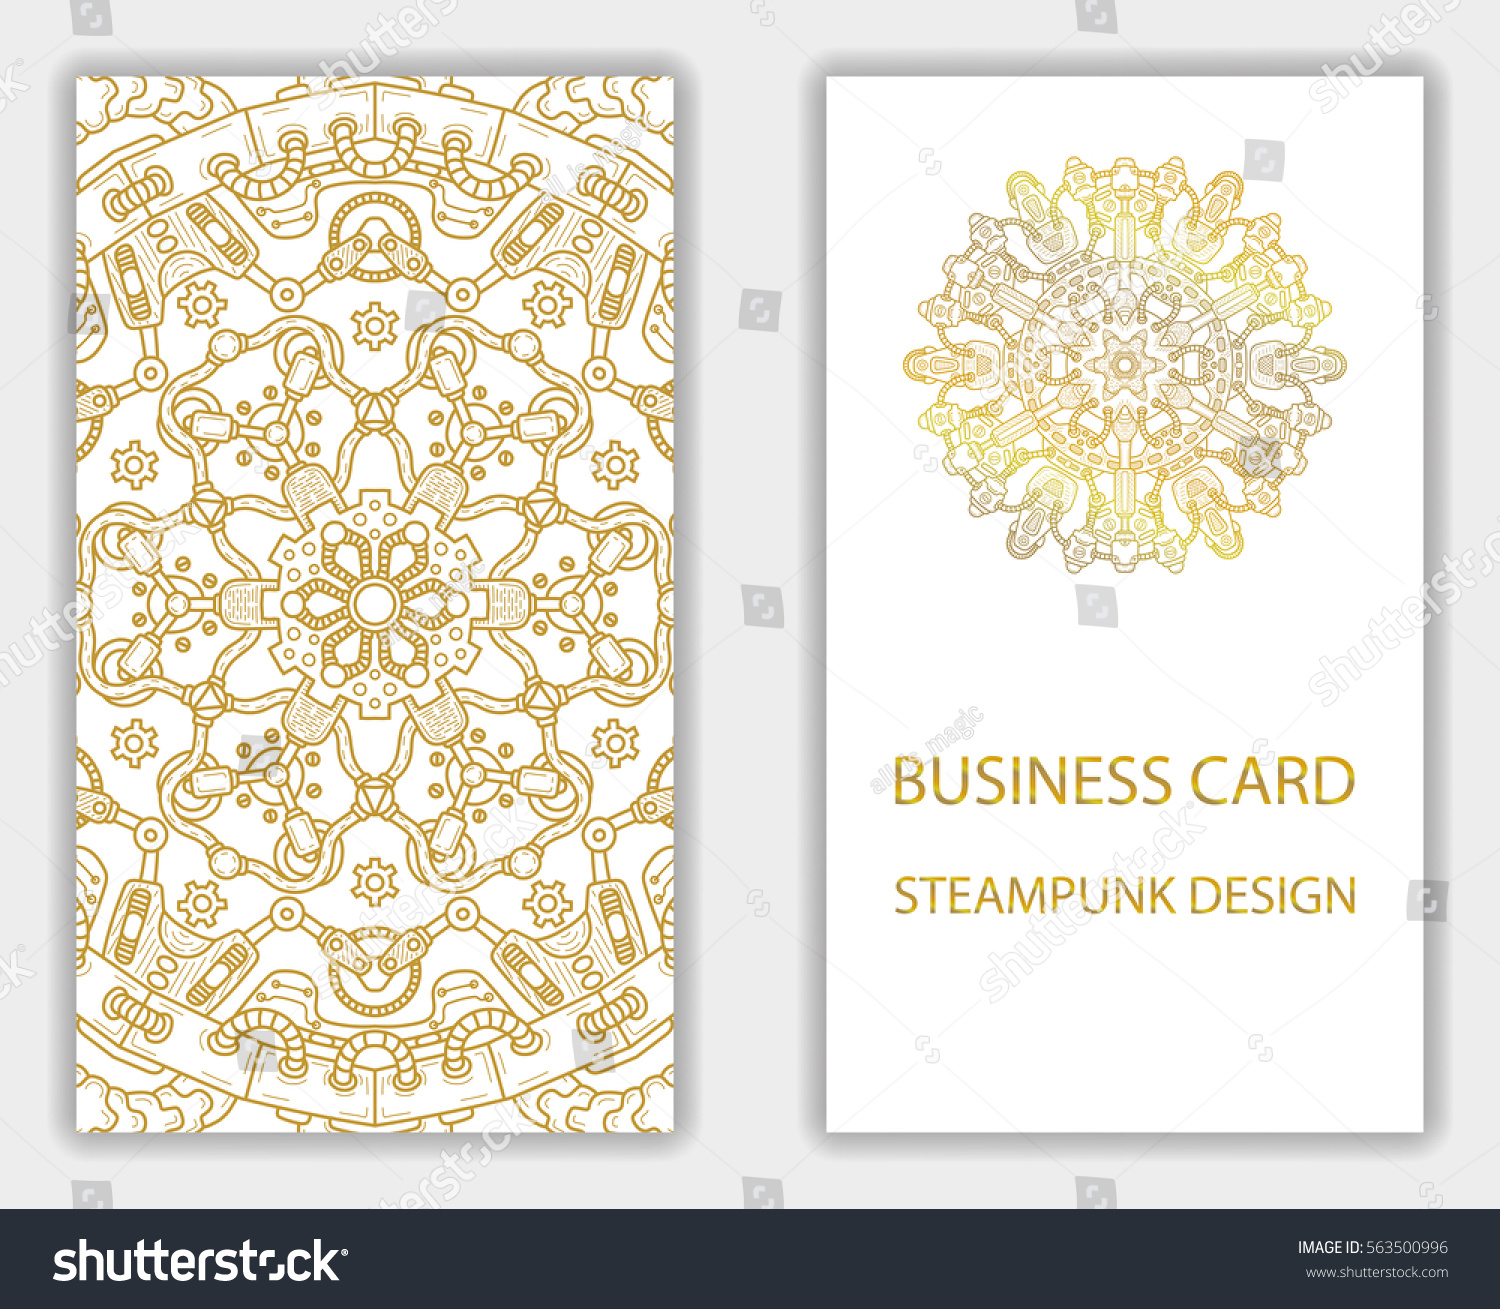 Business Card Steampunk Abstract Design Elements Stock Vector ...